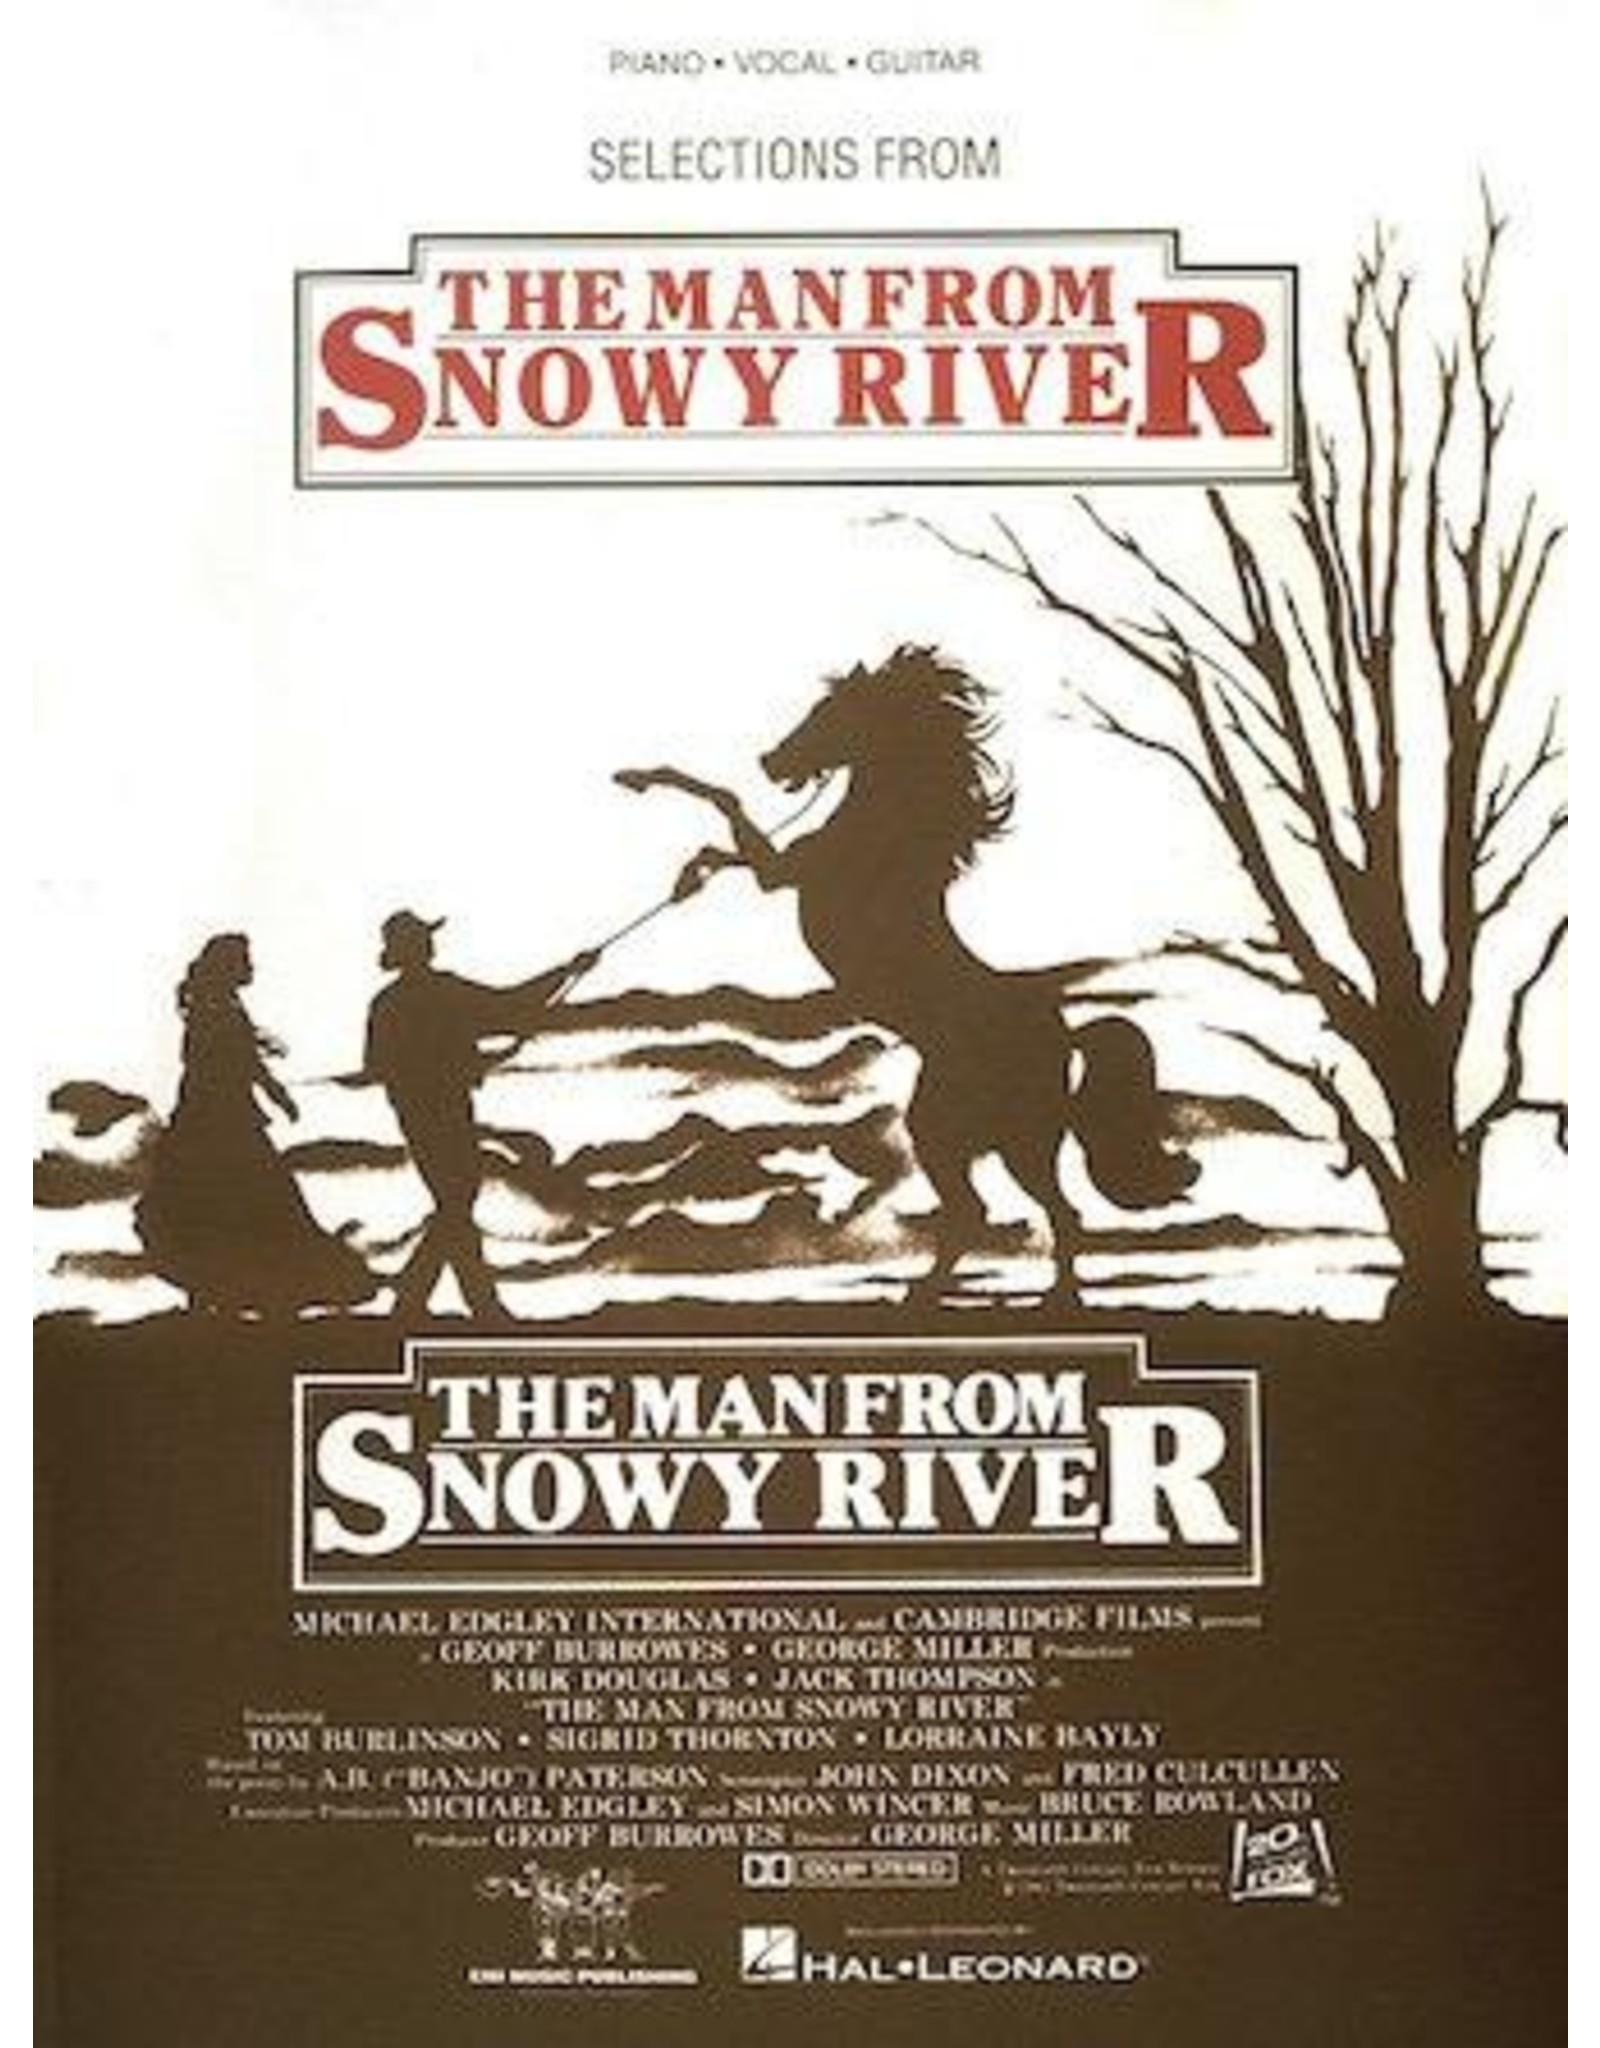 Hal Leonard Man From Snowy River Selections by Bruce Rowland PVG